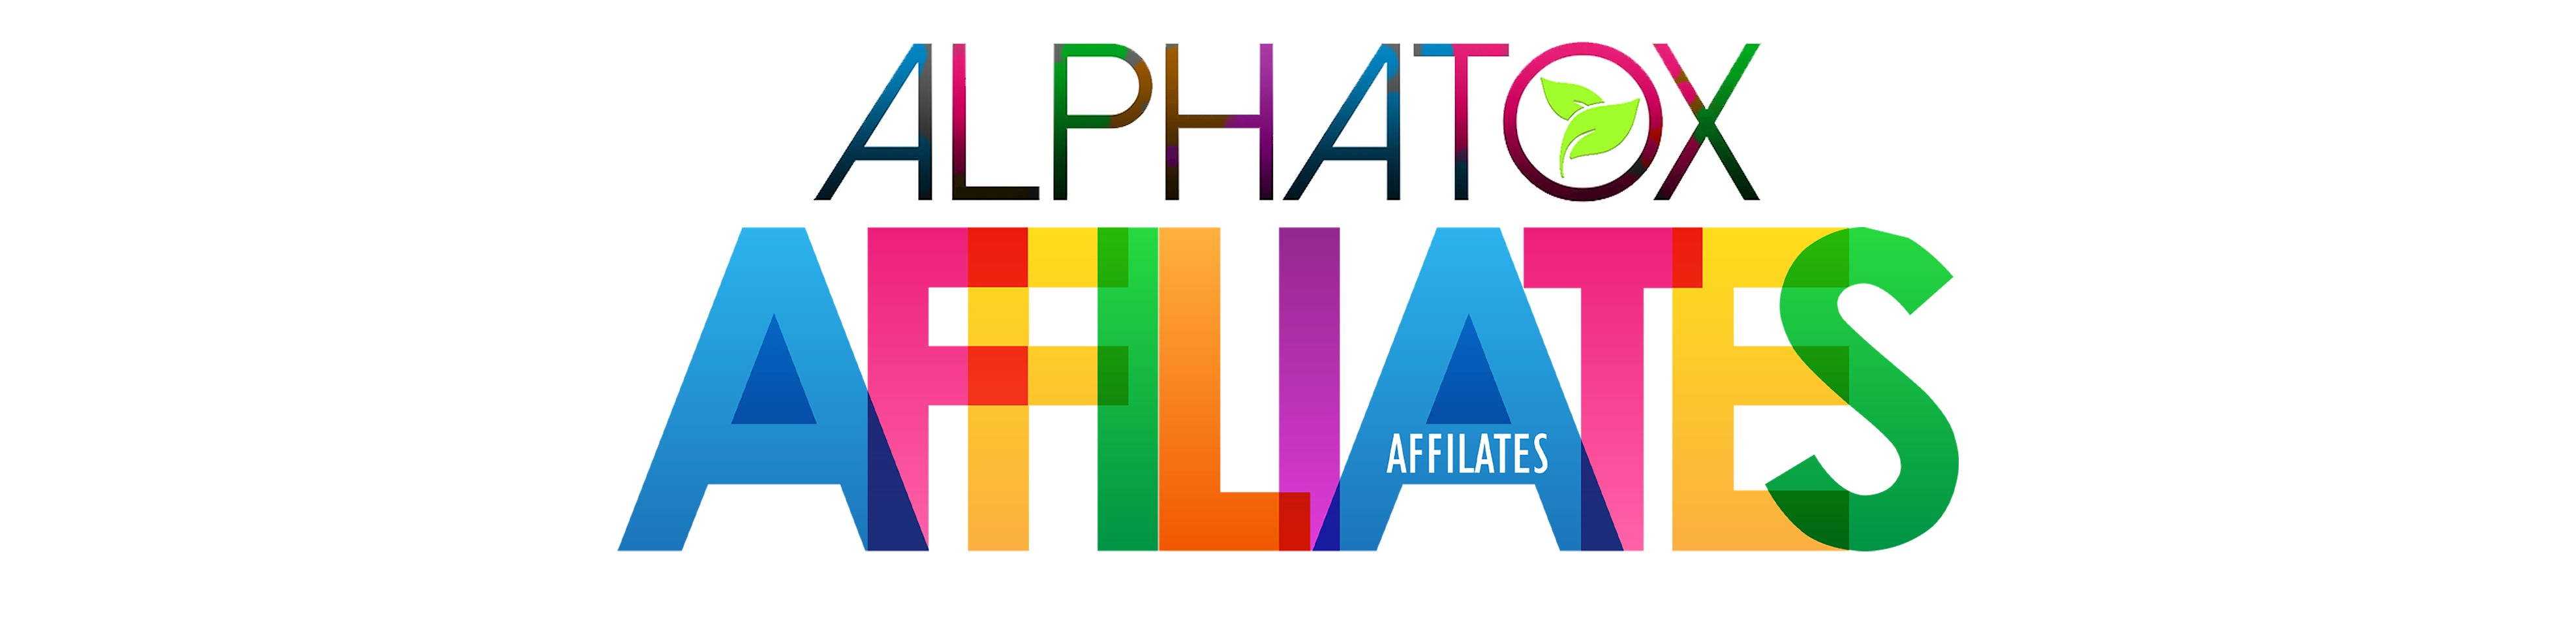 Earn While You Burn. Fat Burning has Never Been So Easy , Natural , Delicious , and Rewarding. Shop Internationally Famous Fitness Luxury Artisan Teas by Alphatox